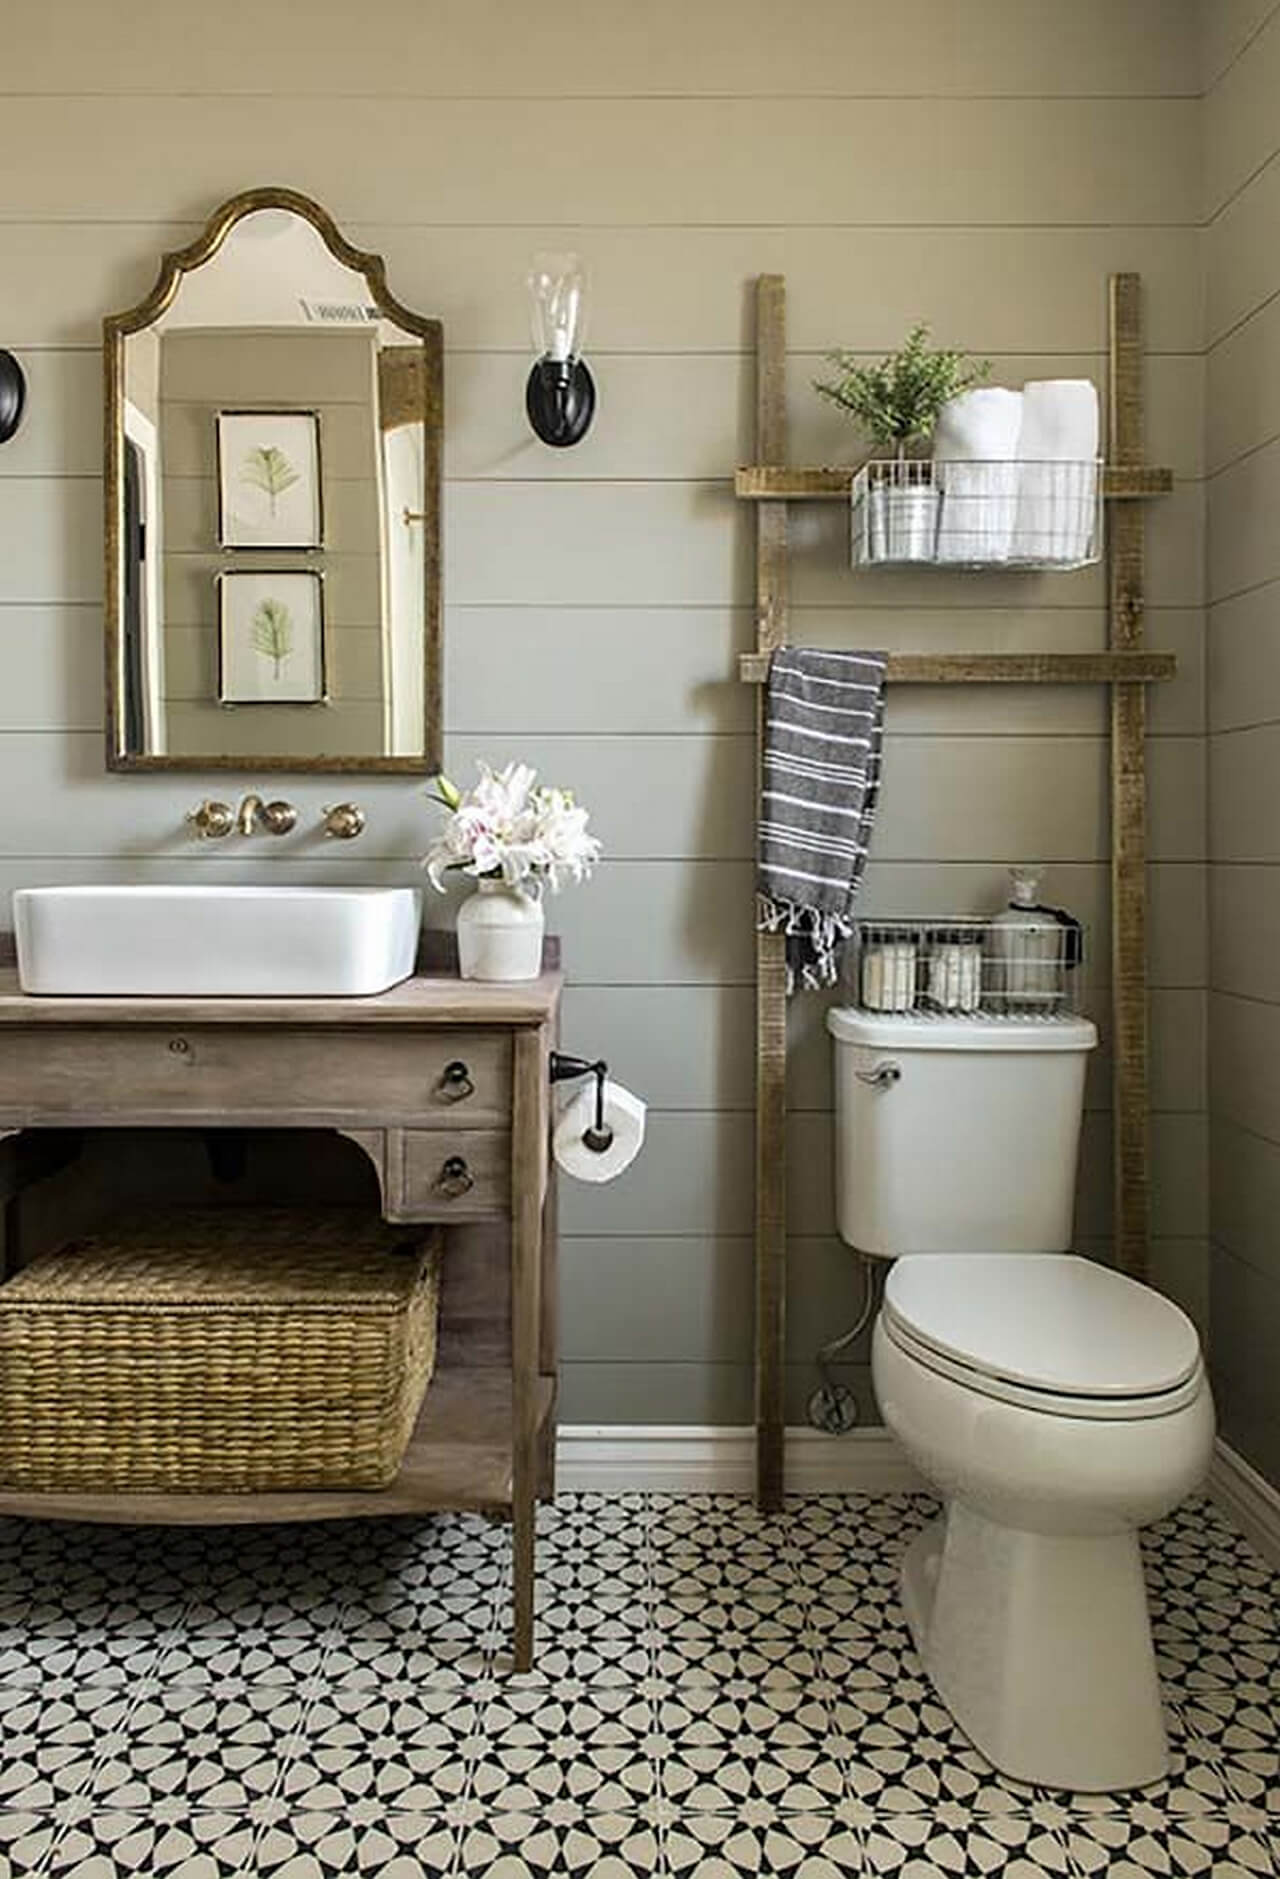 32 Best Small Bathroom Design Ideas and Decorations for 2020 on Small Bathroom Remodel Ideas 2019  id=59516